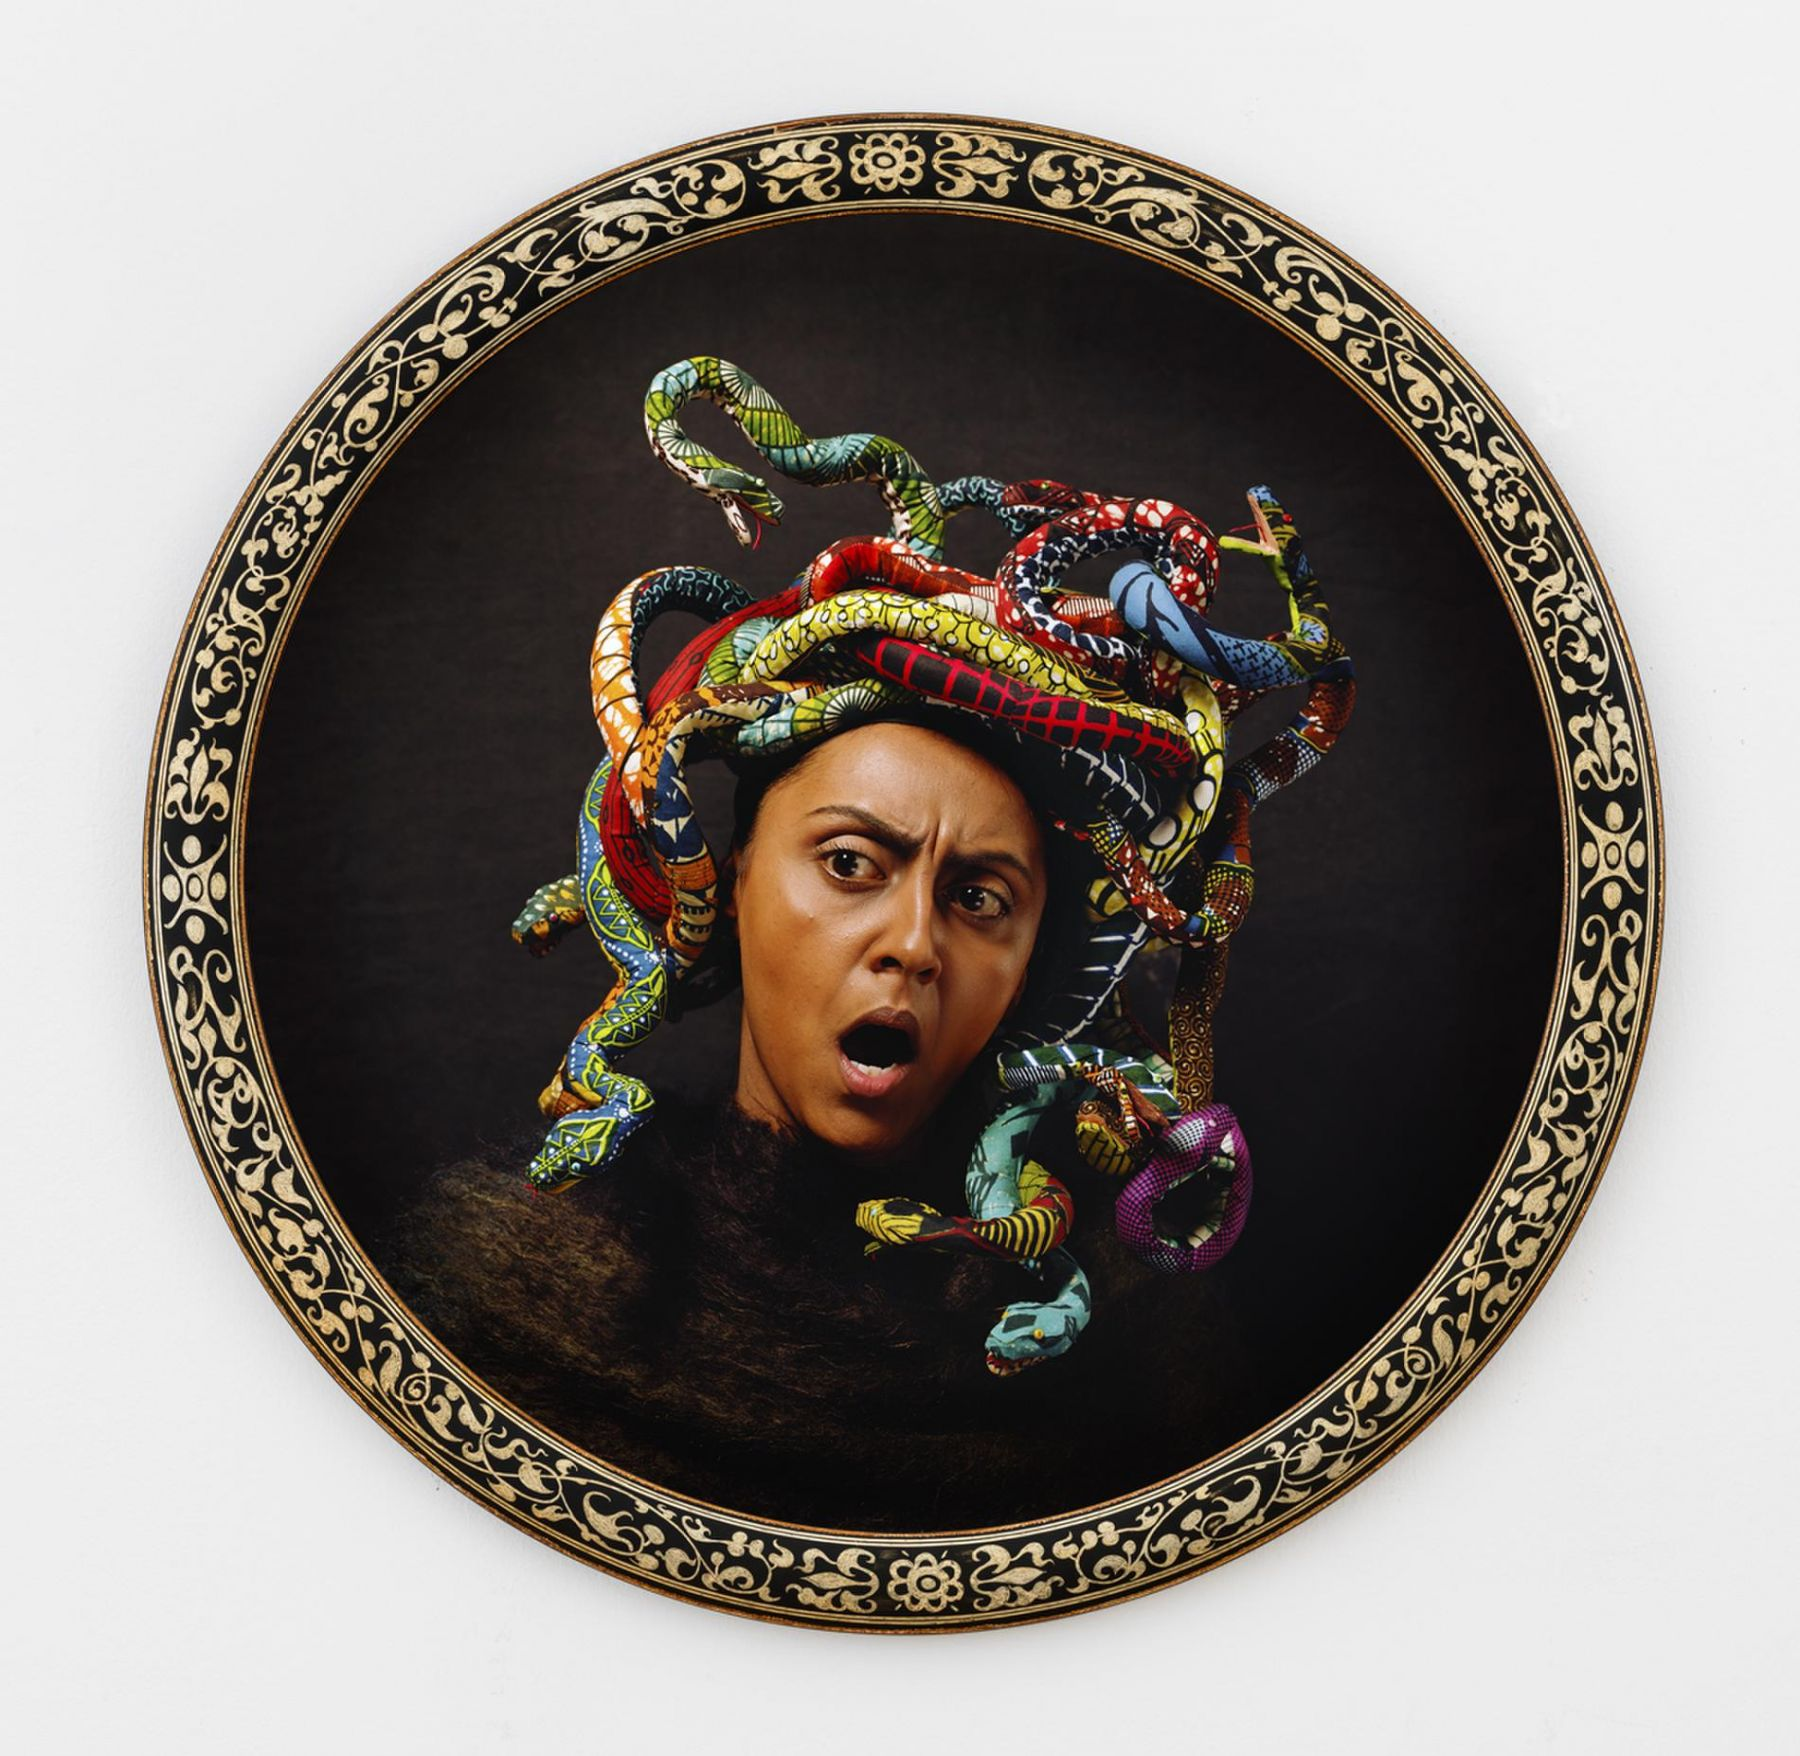 , YINKA SHONIBARE MBE Medusa North, 2015 Digital chromogenic print, bespoke wood frame Framed diameter: 44 7/8 in. (113.98 cm) Edition of 5